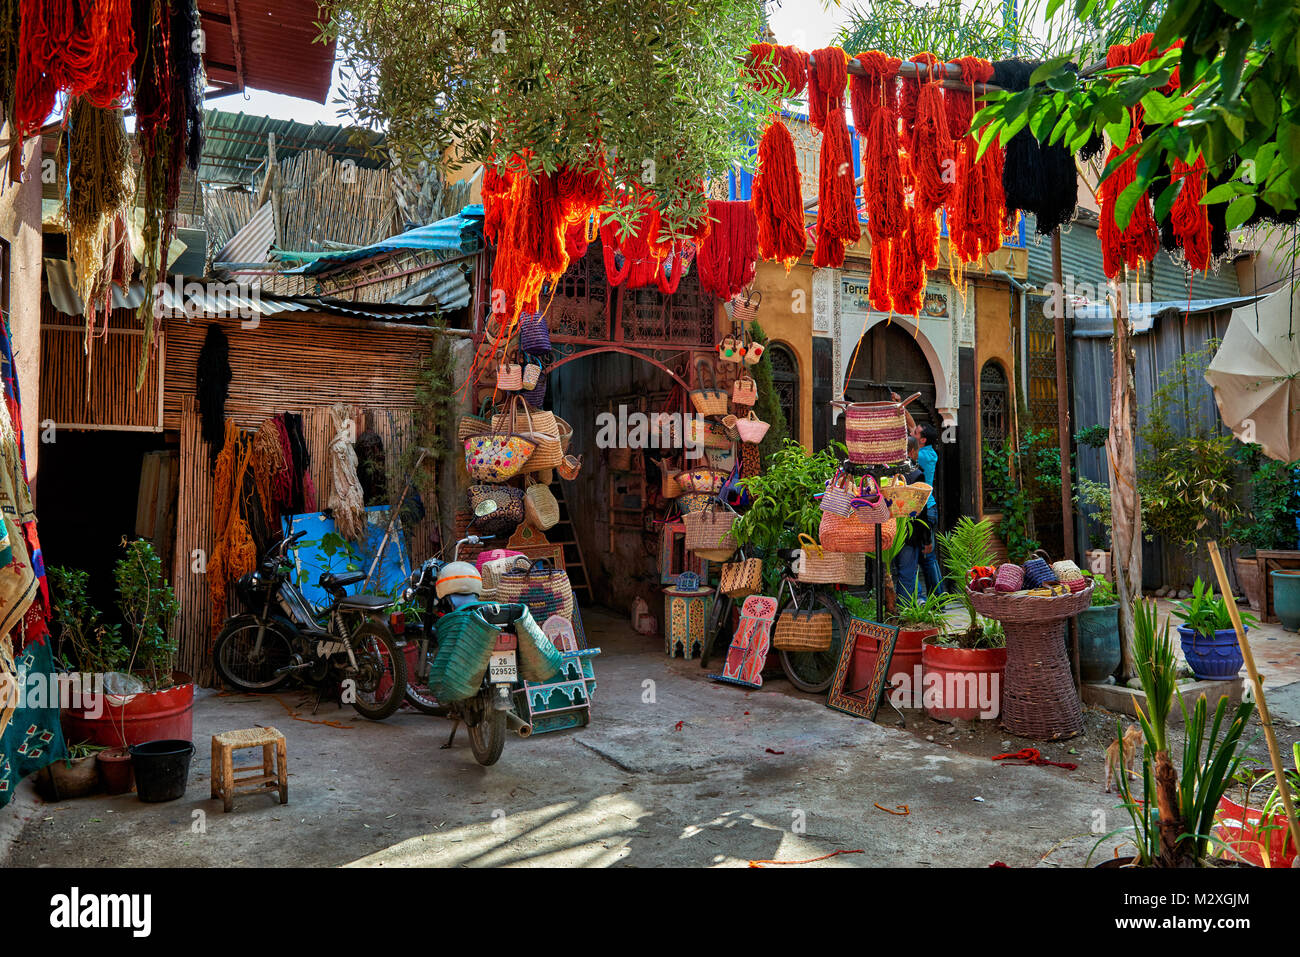 Brightly coloured wool hanging to dry in the dyers souk,  textile souk of Marrakesh, Morocco, Africa - Stock Image